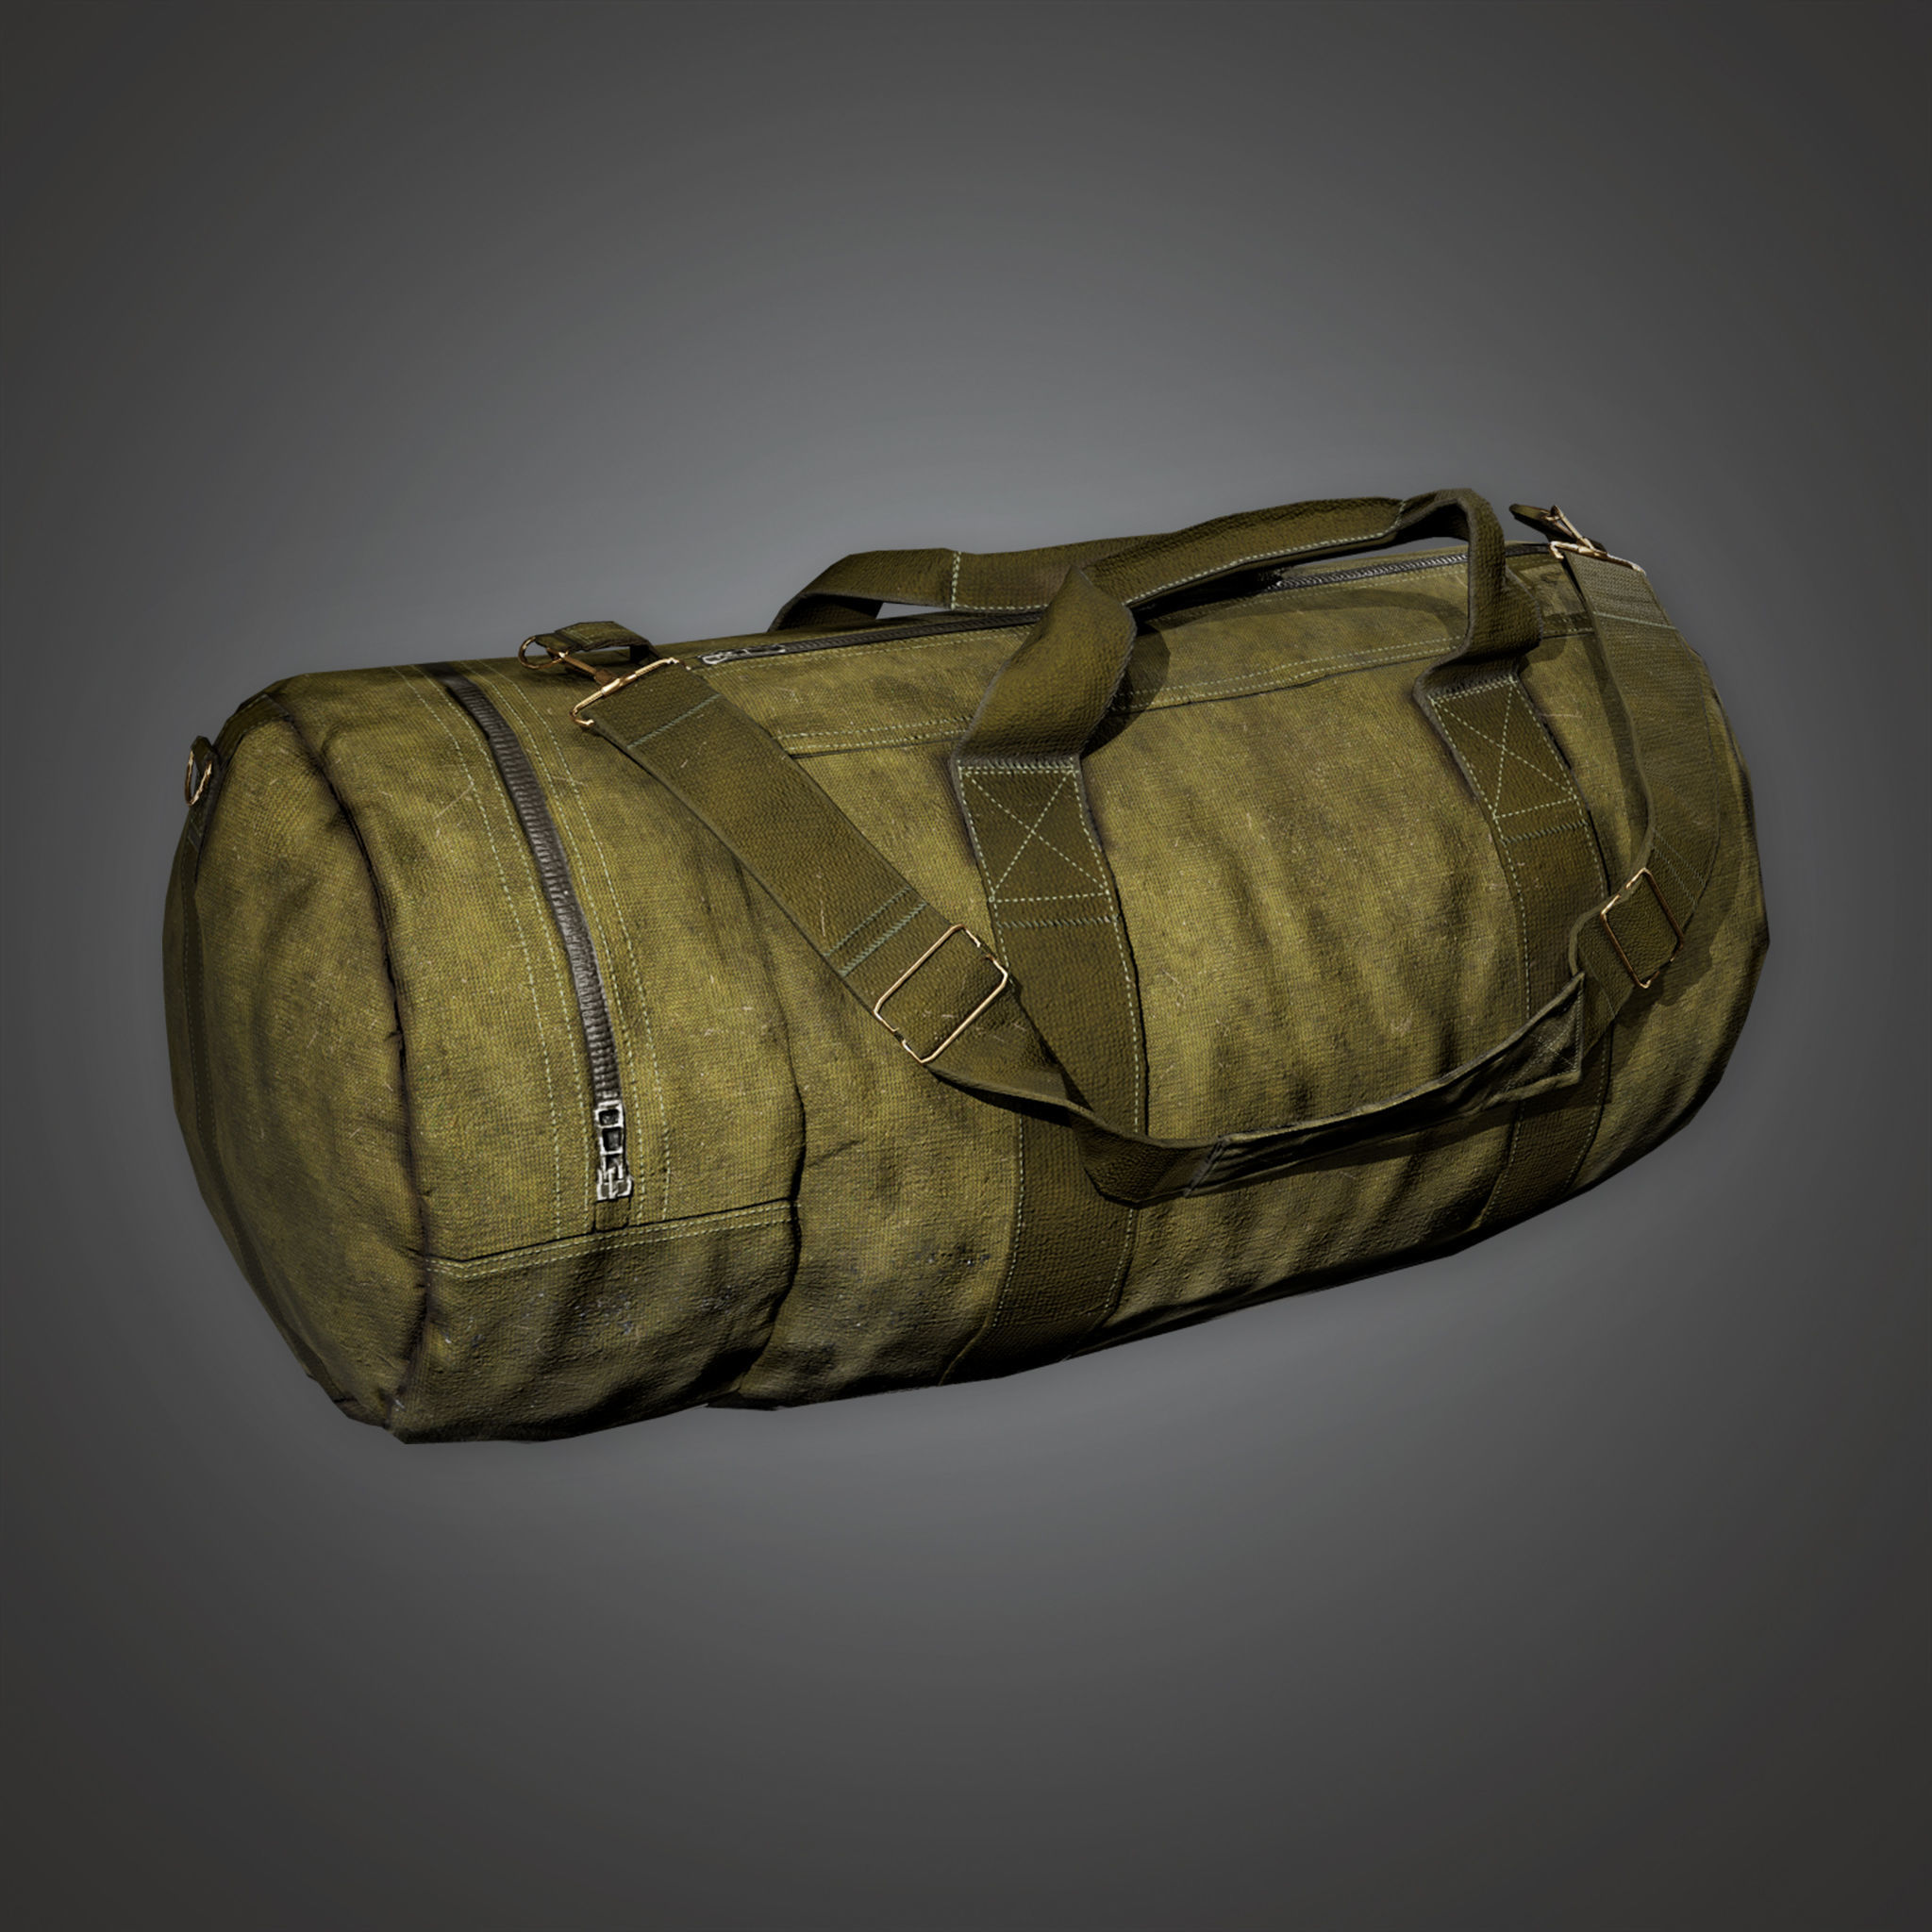 MLT - Military Backpack 01 - PBR Game Ready